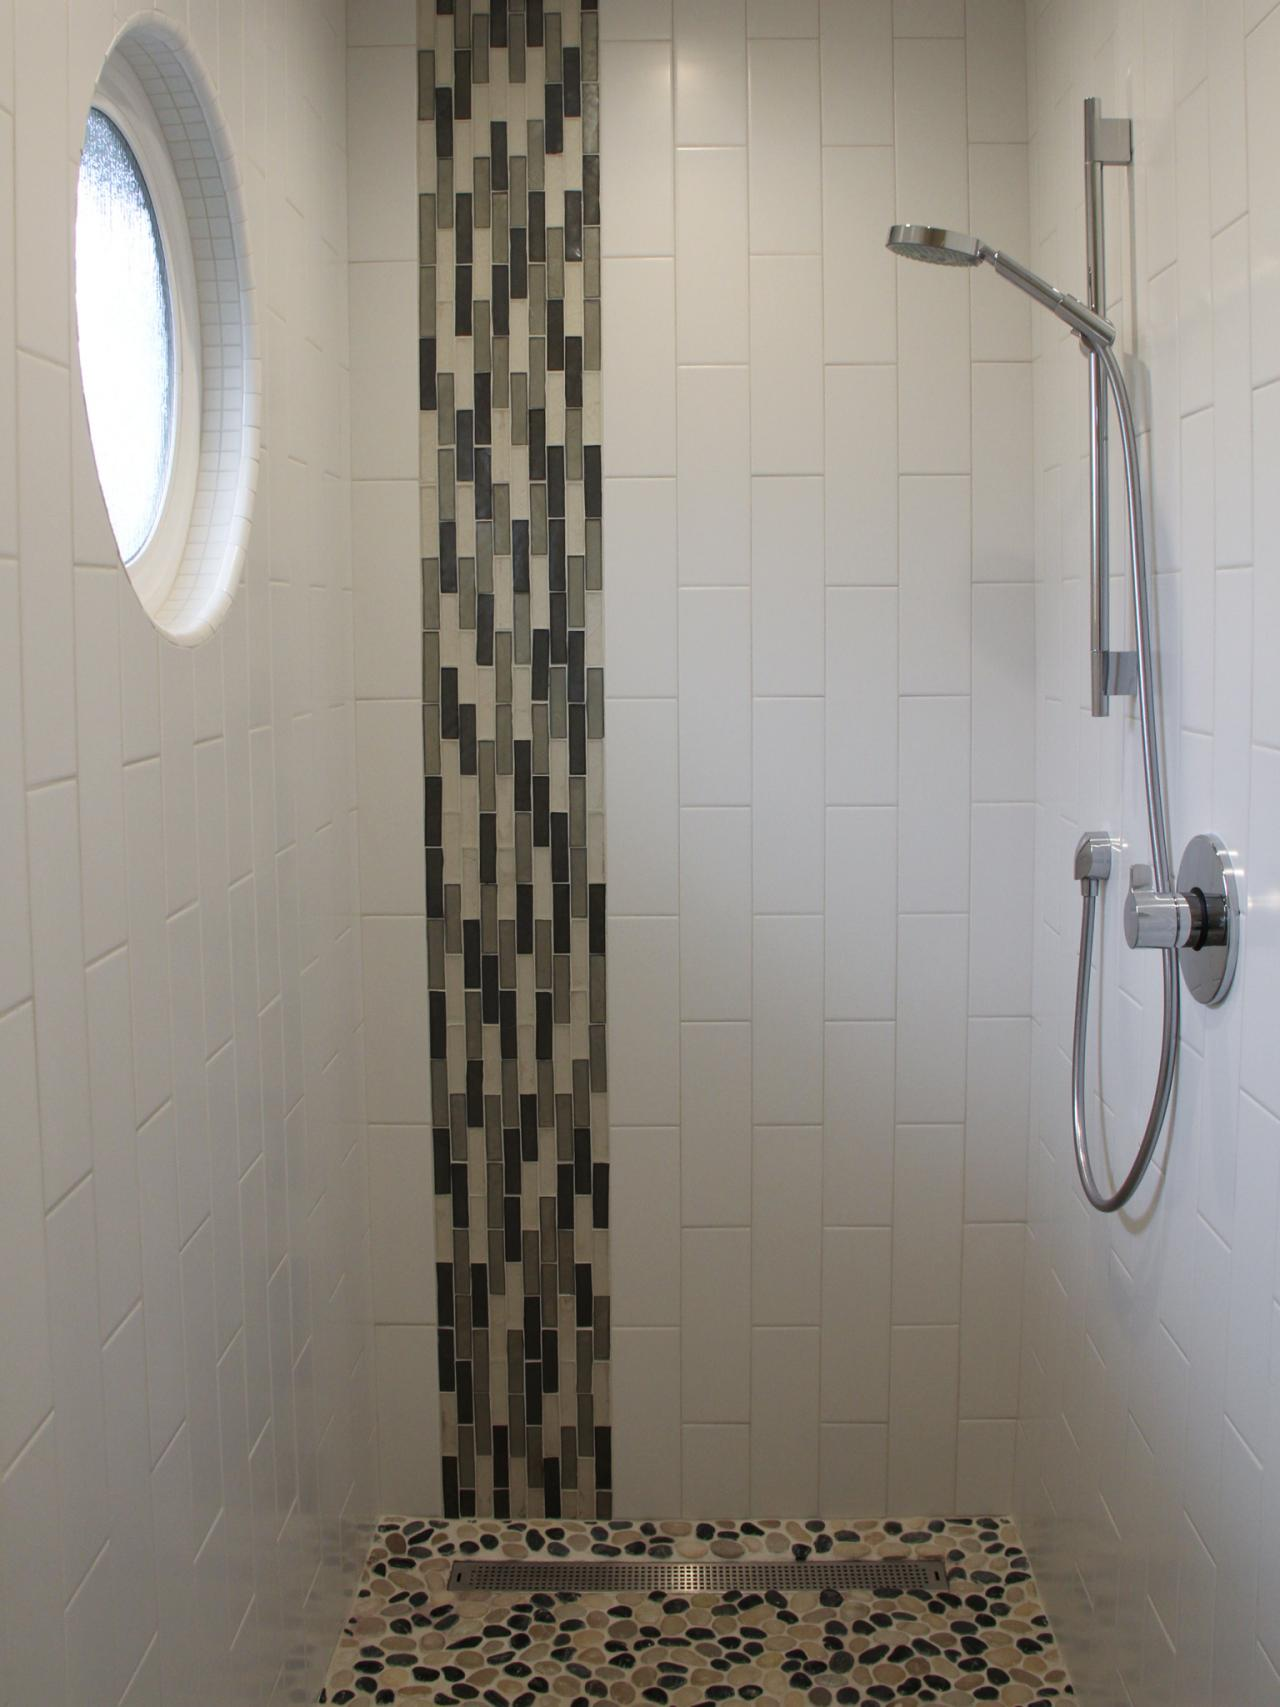 bathroom-interior-vertical-white-ceramic-glass-tile-shower-room-wall-panel-with-rounded-glass-window-plus-black-and-gray-glass-mosaic-accent-shower-designs-with-glass-tile